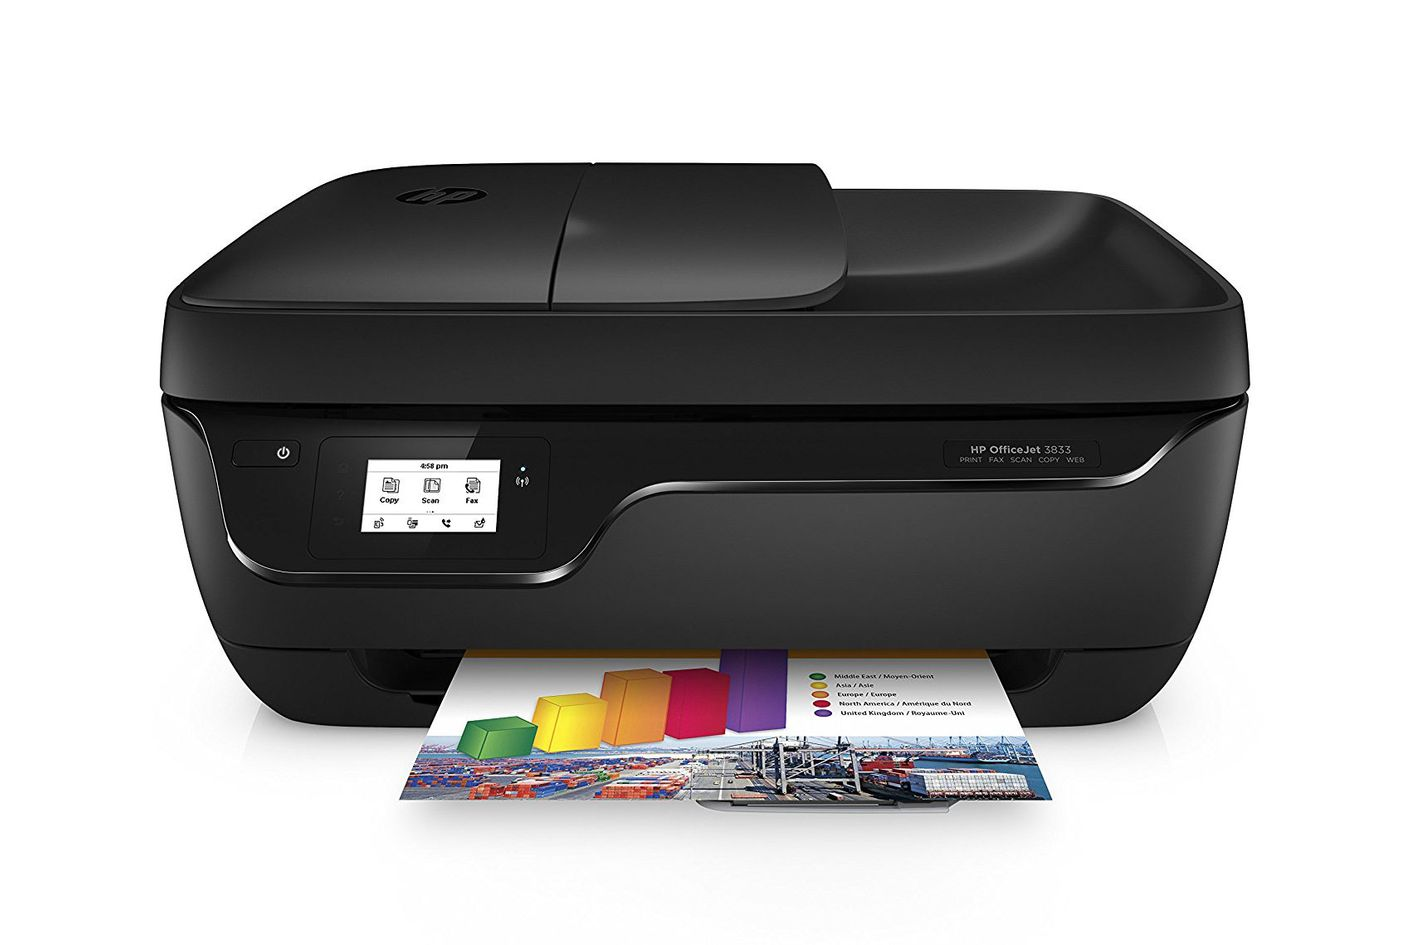 Best Printer 2017 — All-In-One, Wireless & Home Printers